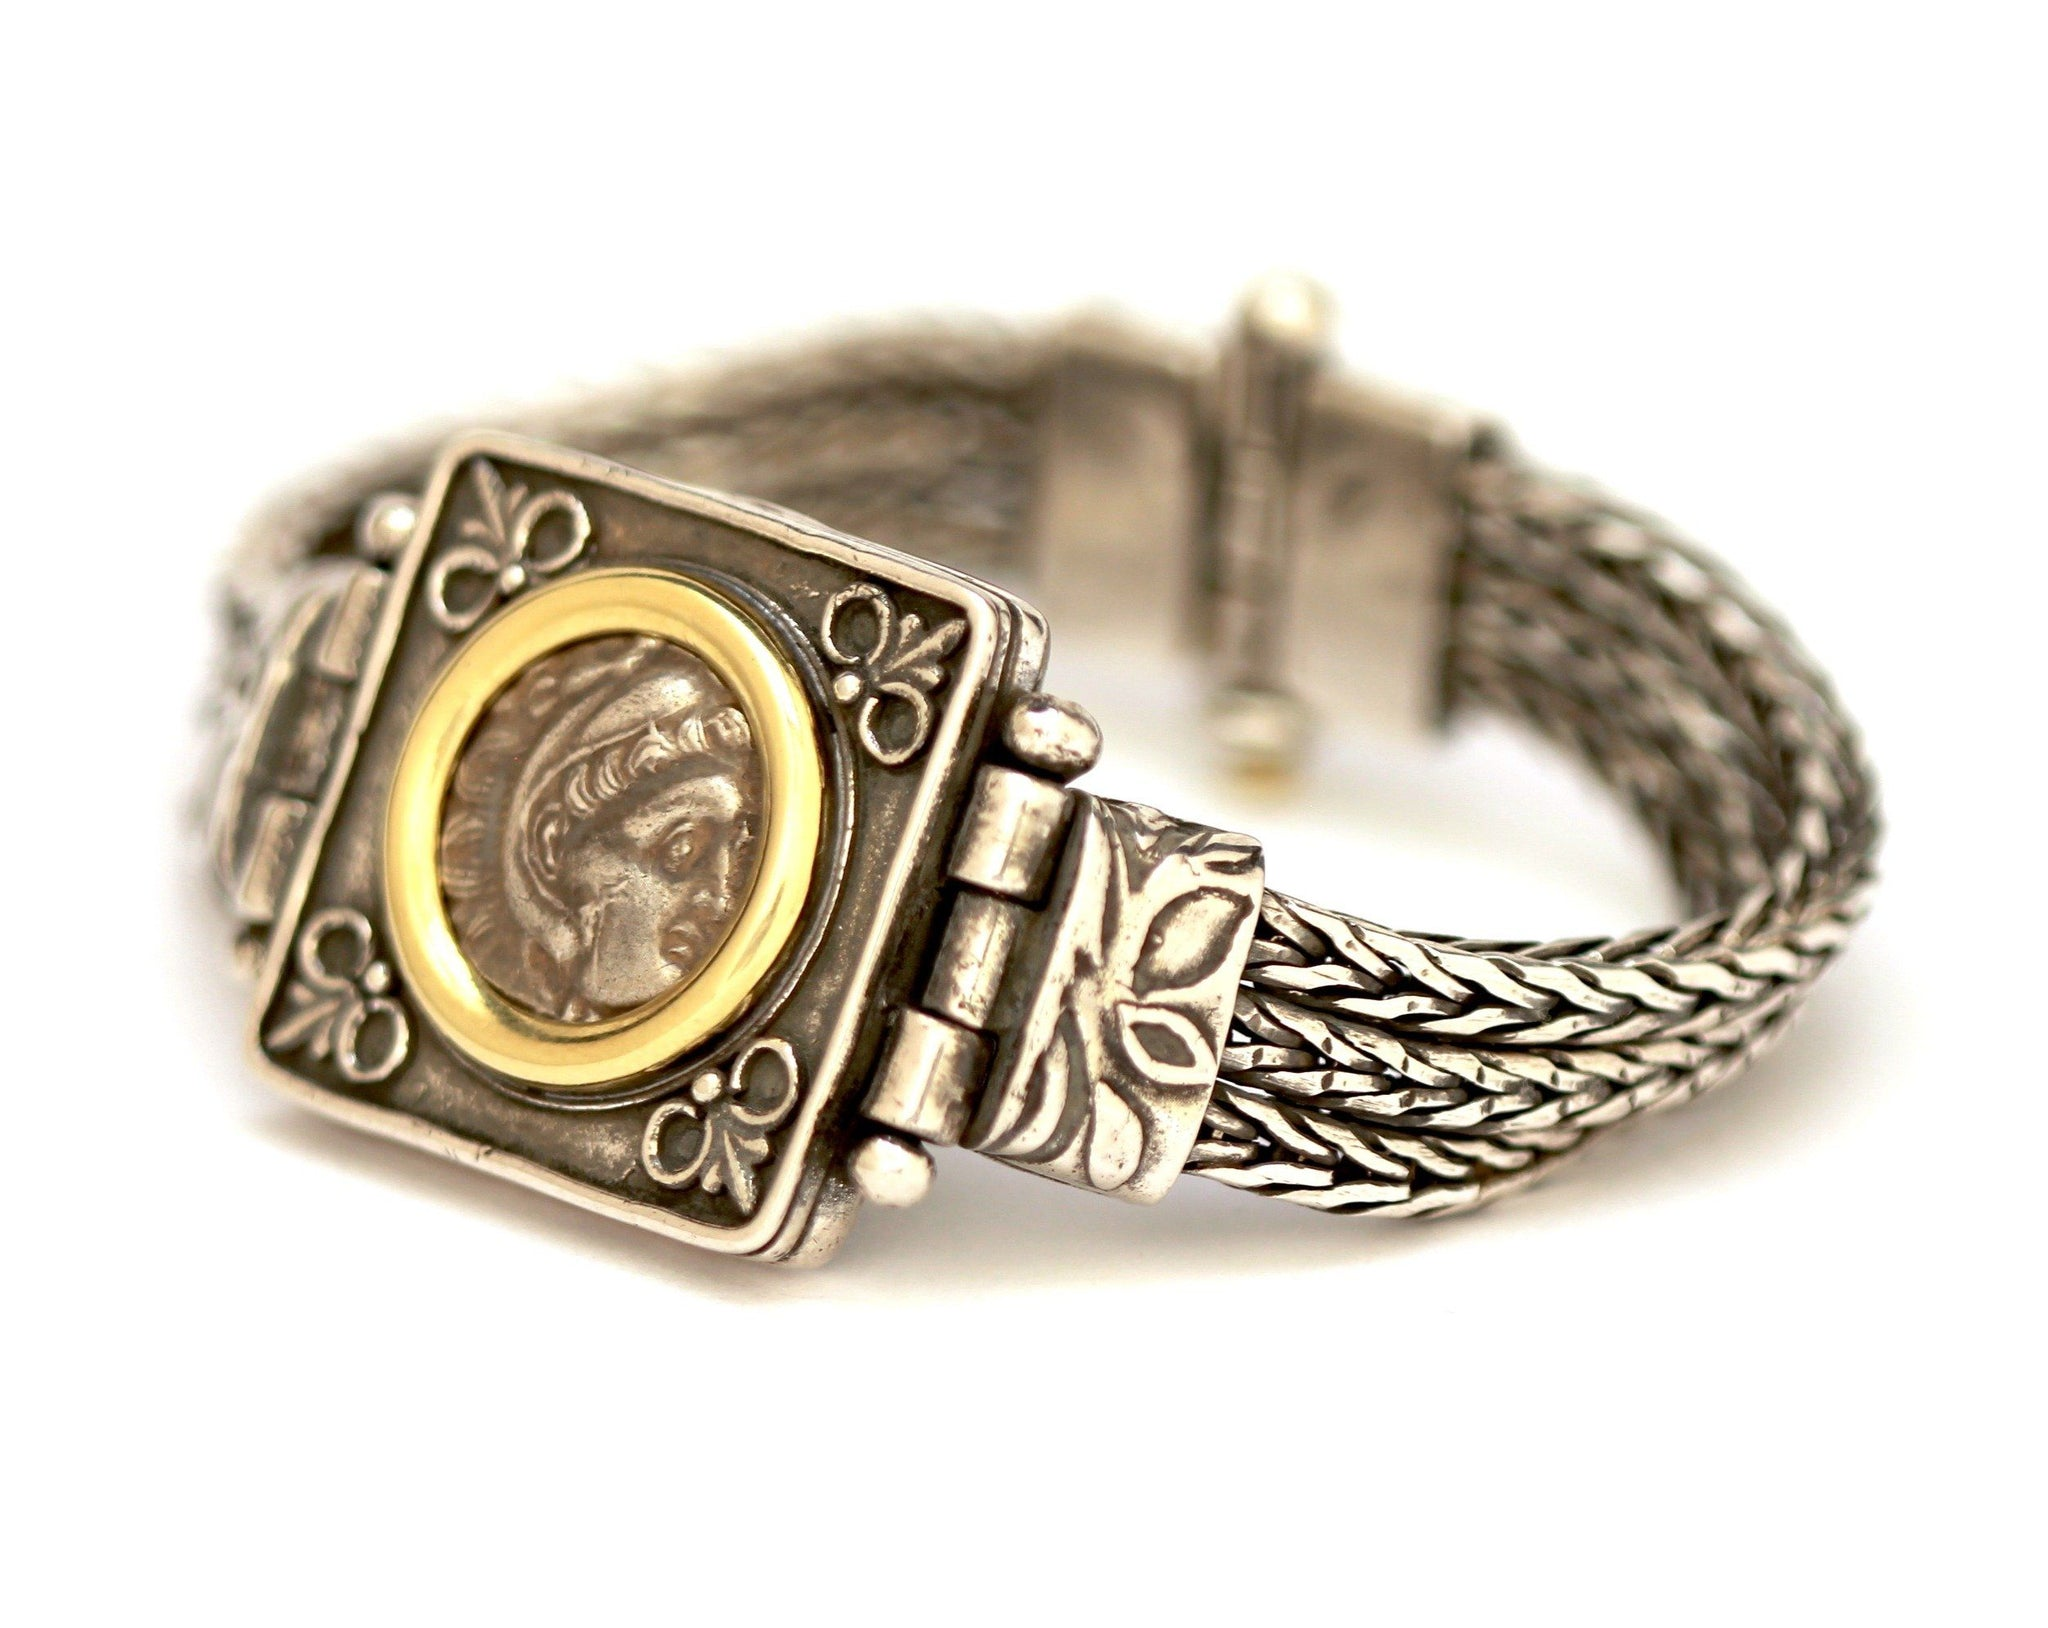 Alexander the Great Bracelet, 14K Gold and Sterling Silver, Genuine Ancient Coin, with Certificate  ID13082 - Erez Ancient Coin Jewelry